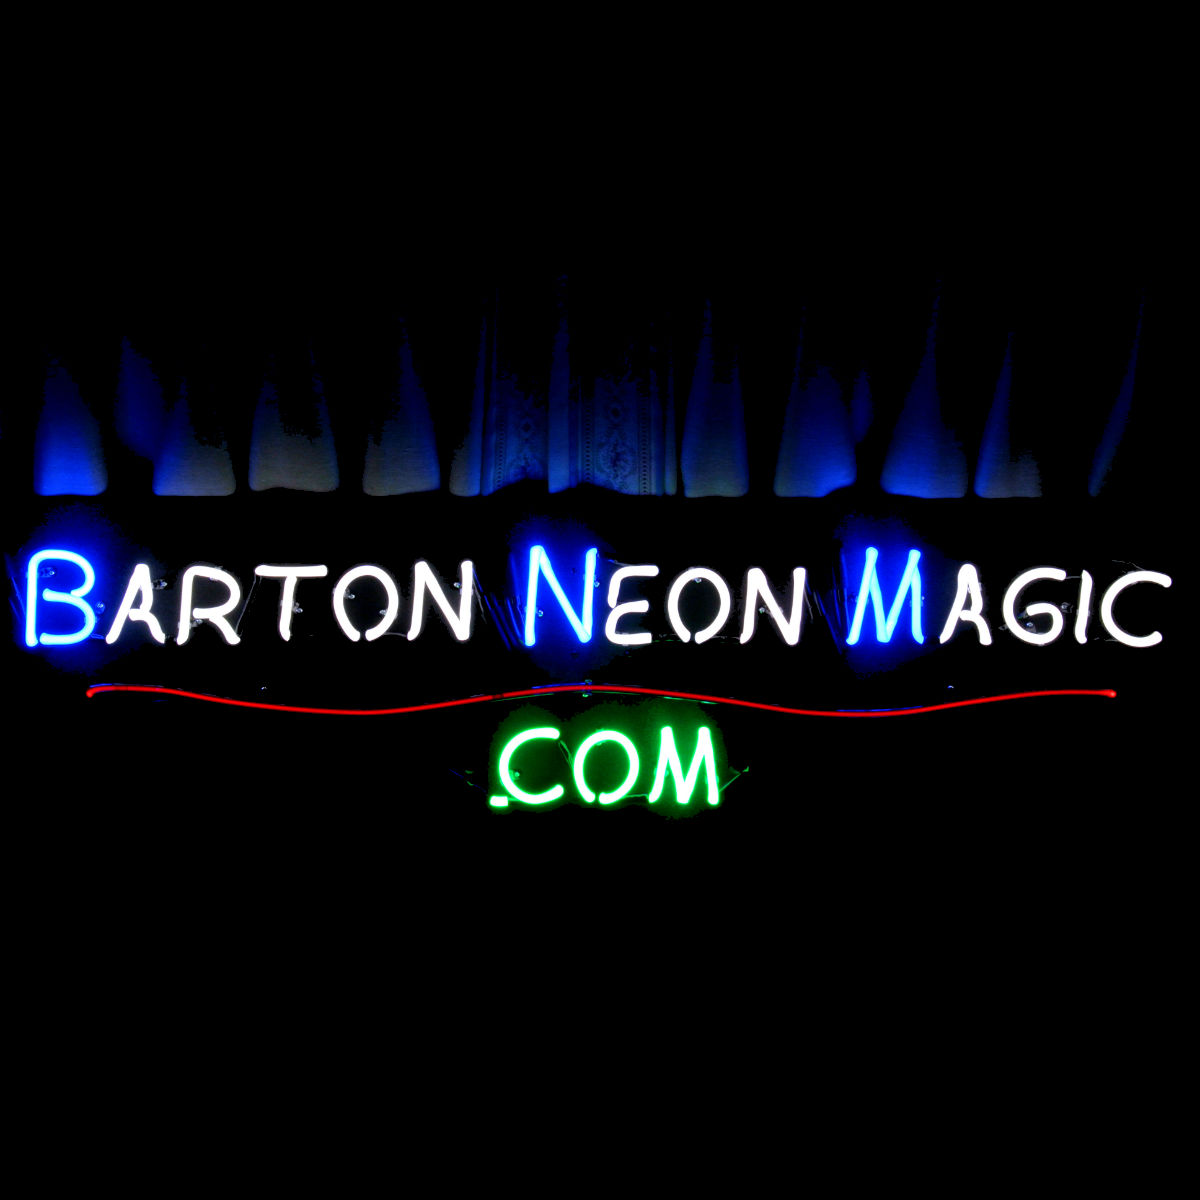 High End Custom Neon Lighting by John Barton - BartonNeonMagic.com